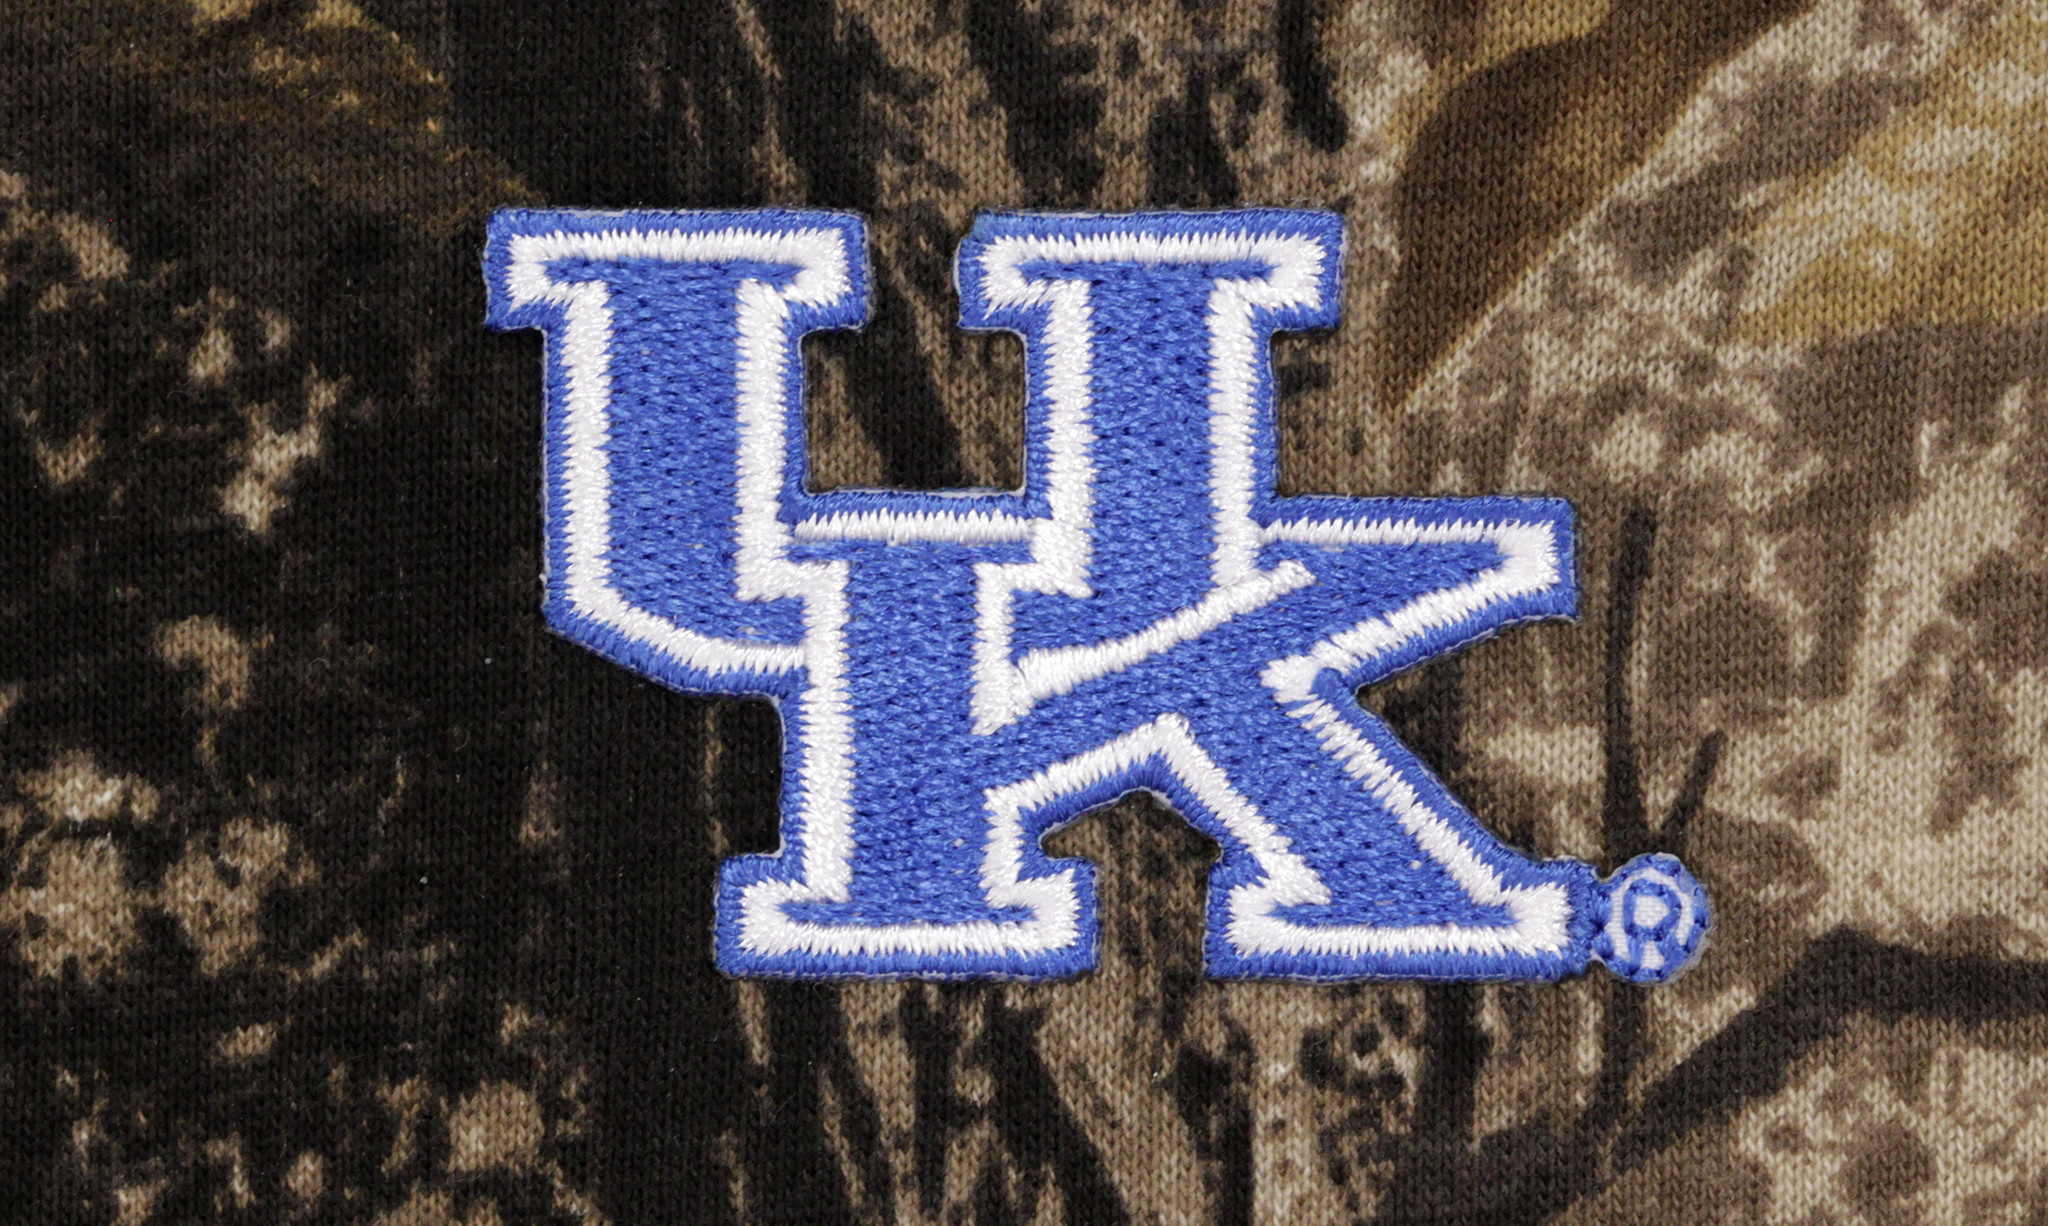 2048x1226 University-of-kentucky-wildcats-cam-real-tree-overall-